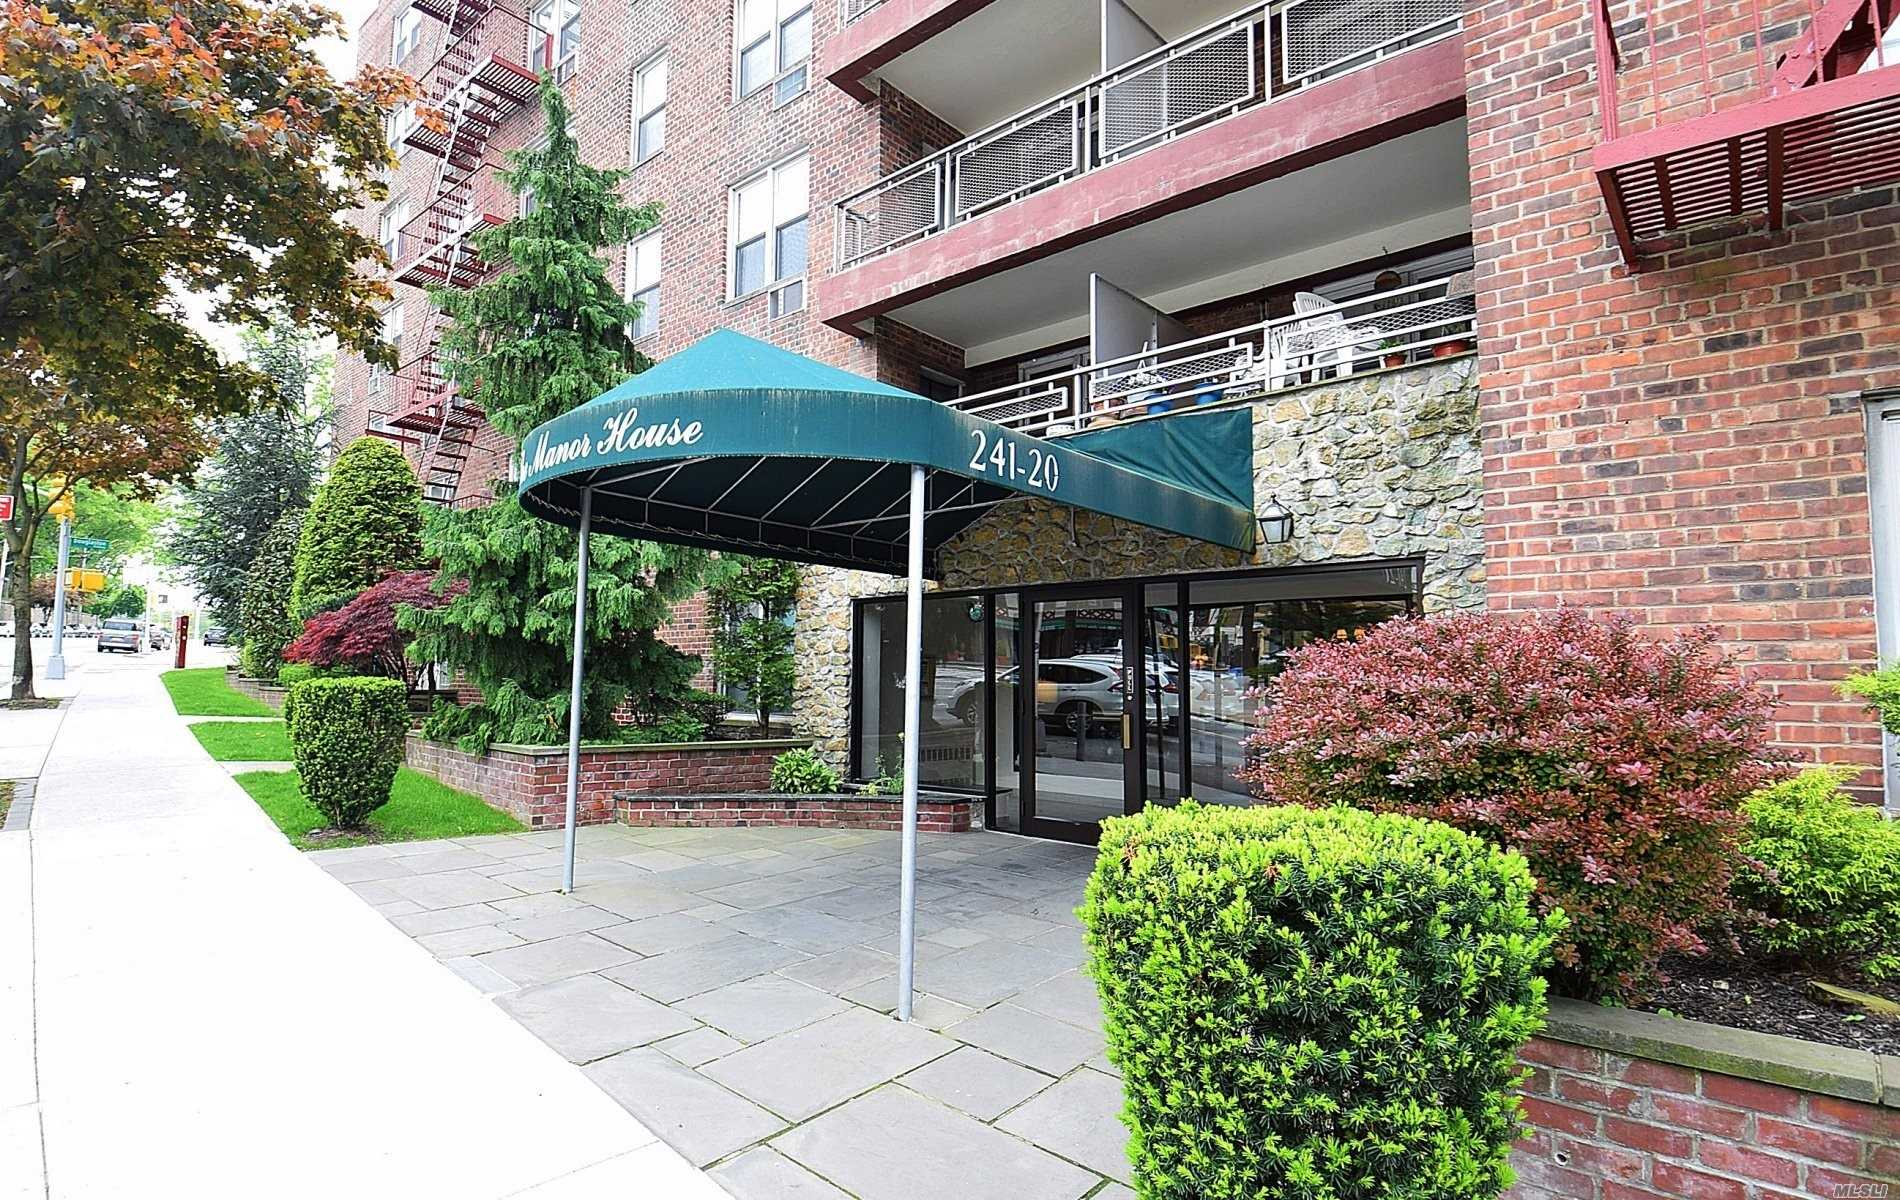 Welcome To The Manor House In Douglaston! This Ultra Spacious Beautifully Renovated And Updated 1Br Apt Is Located Just Down The Block From The Lirr And Is In Ultra Close Proximity To All Other Transportation As Well As All Shopping! There Is A Dishwasher Hook Up And Laundry Rooms Located On The 1st Floor On Both Sides Of The Building! The Lobby Is Newly Renovated! This Apt. Is Priced To Sell Just Waiting For You! Sd #26!